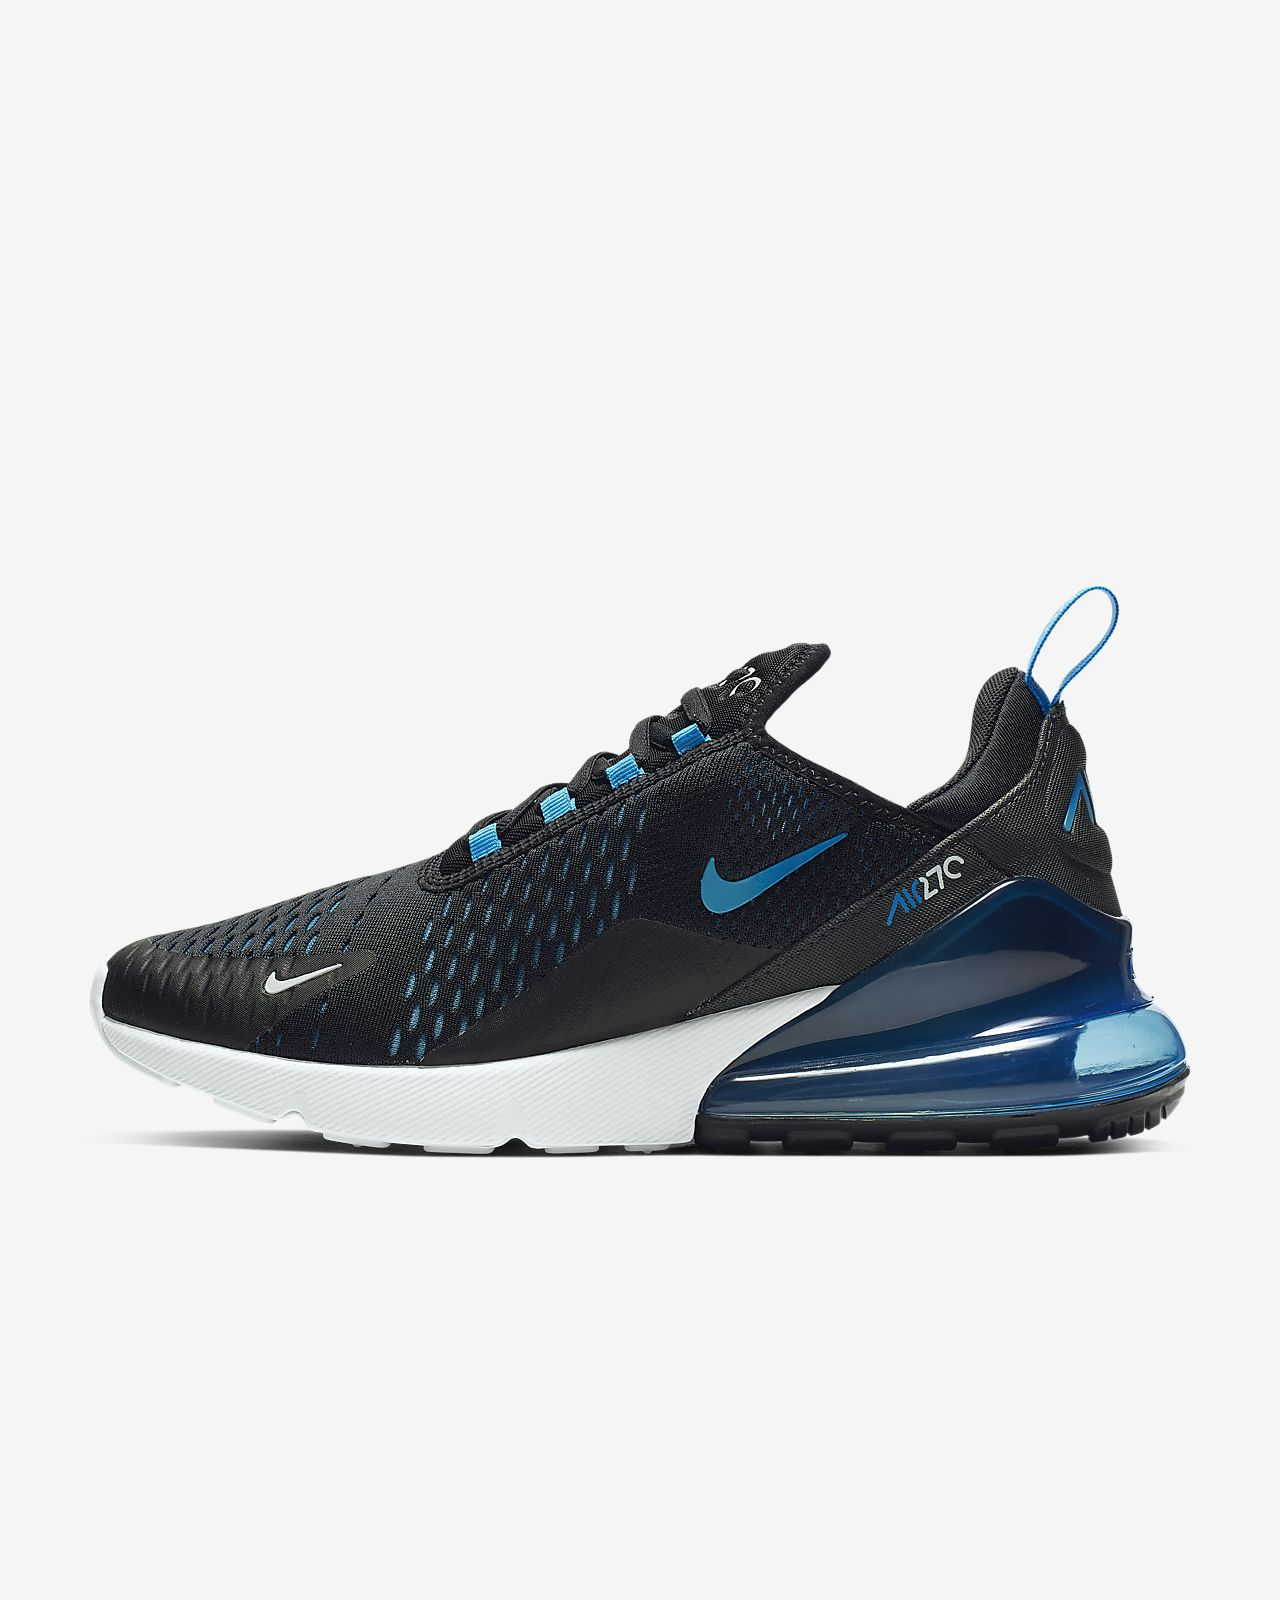 new concept 773ed c52f4 ... Nike Air Max 270 Herrenschuh